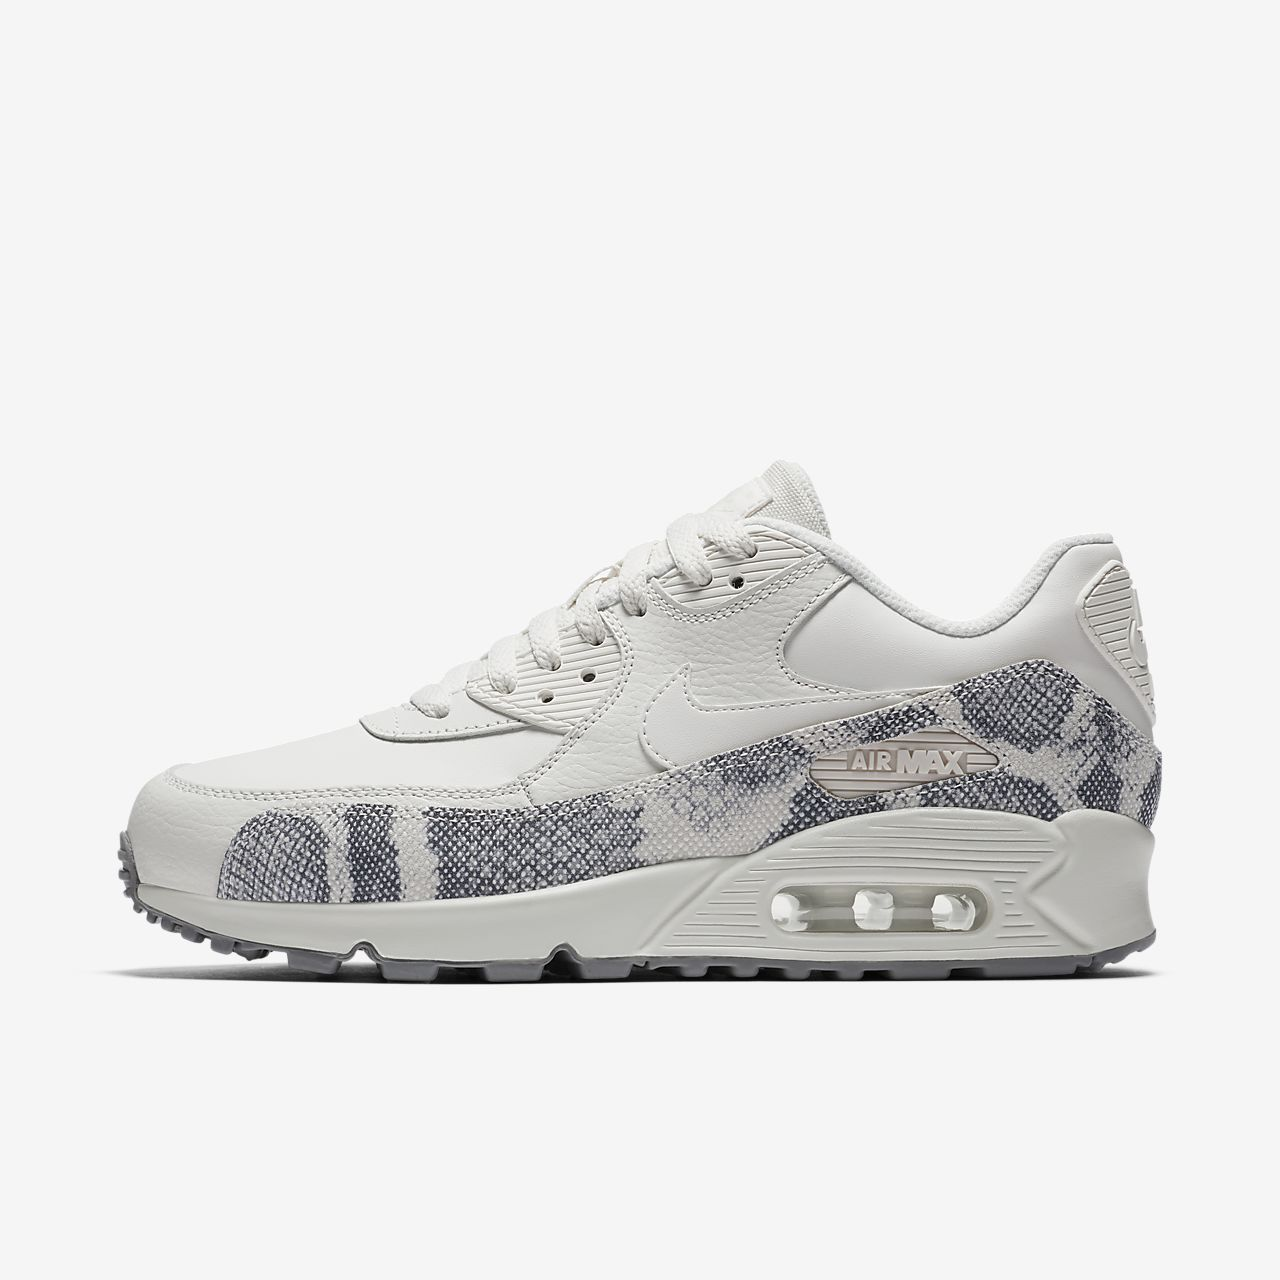 nike air max 90 premium women's white blouse